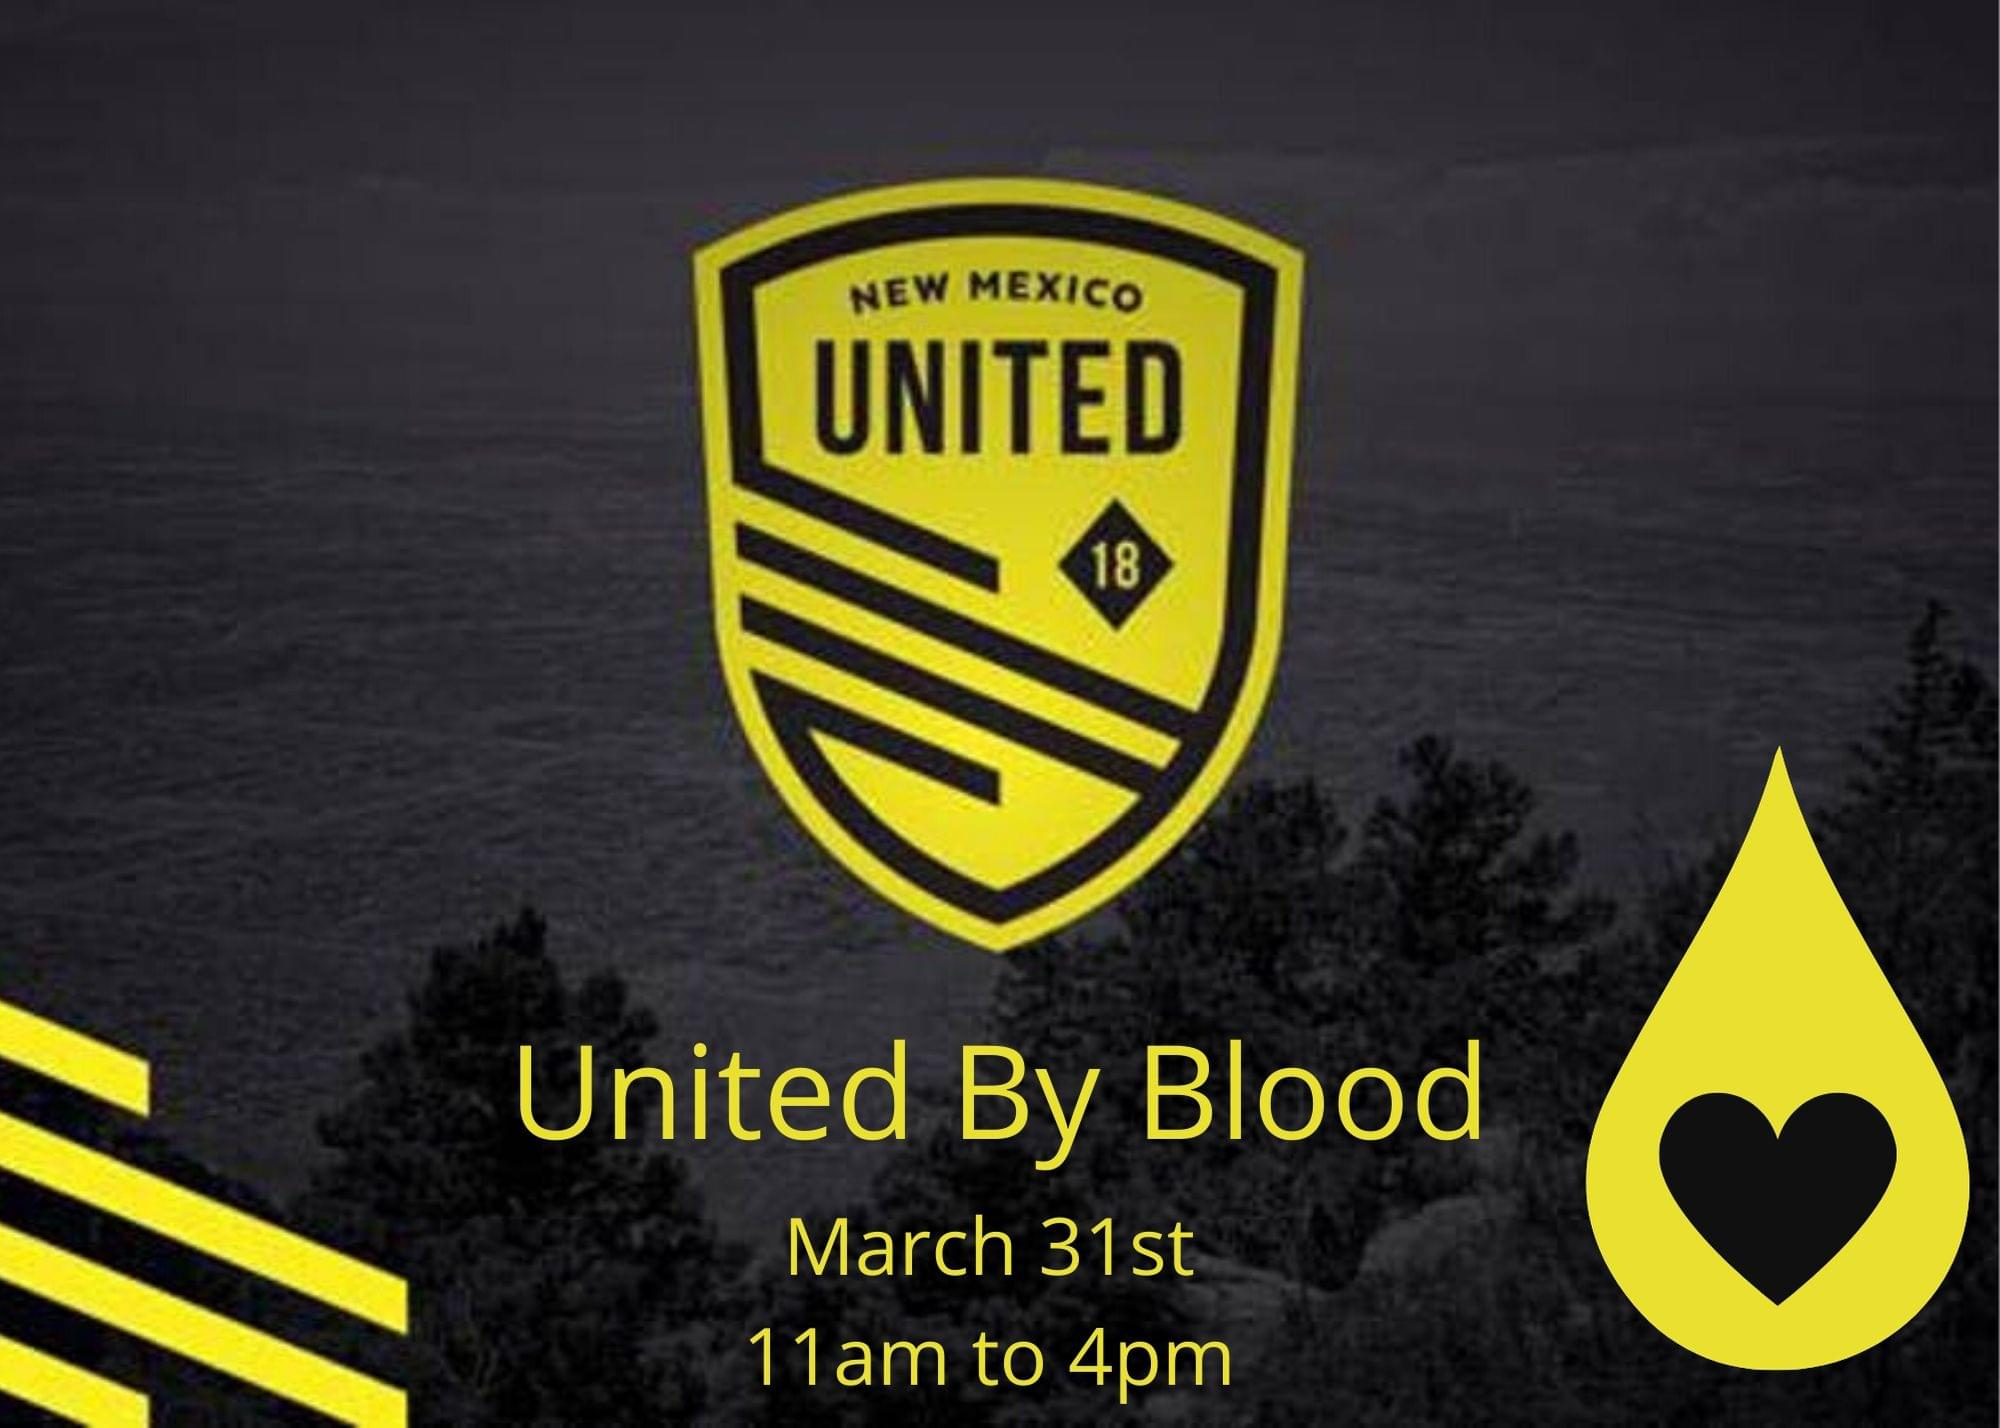 New Mexico United to hold a blood drive initiative